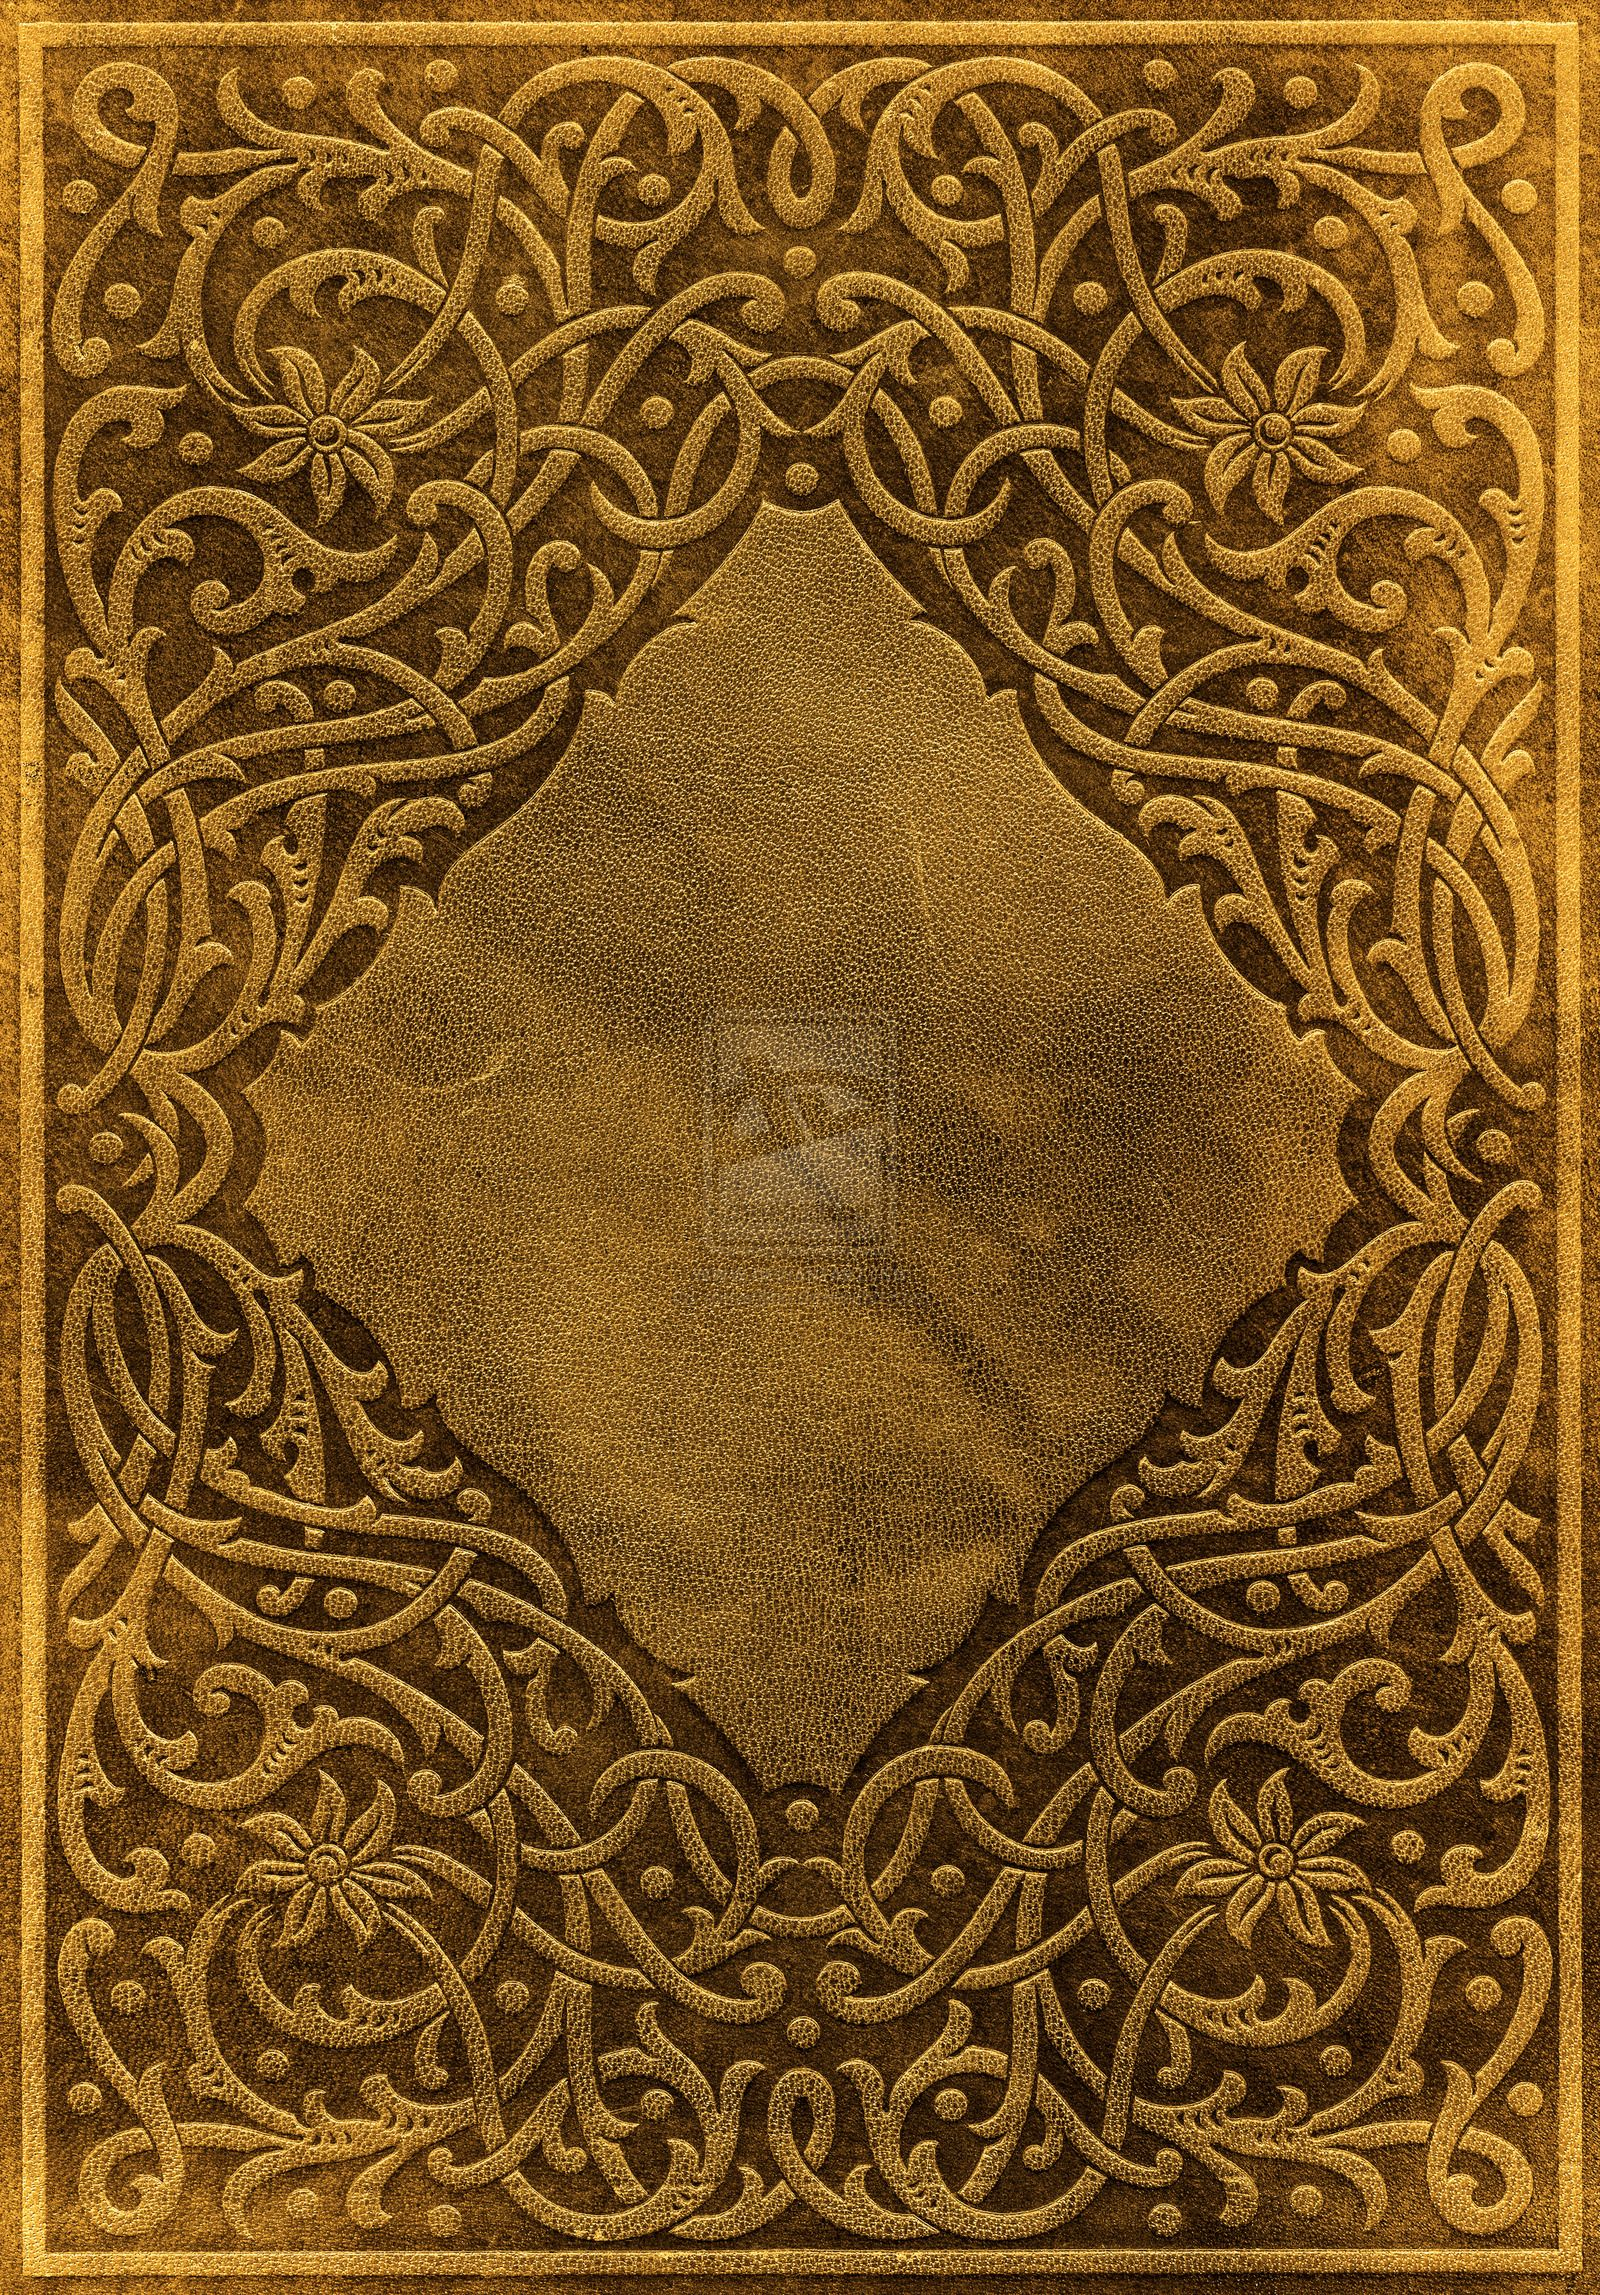 old book designs - Google Search | Doodle wit'it Scribble wit'it ...